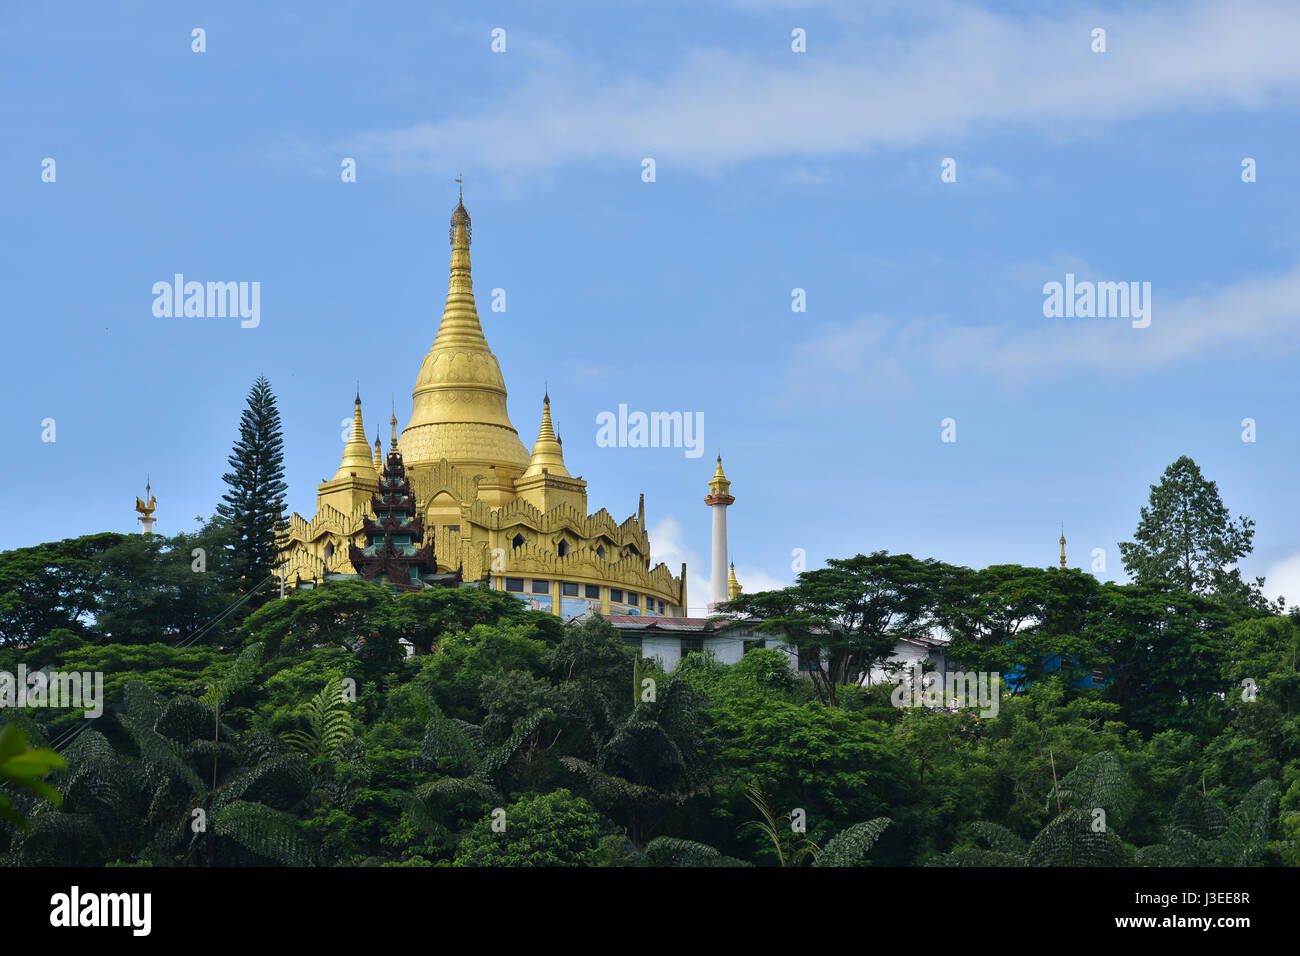 Golden pagoda famous places land mark in mang lah shan state myanmar. Nearly china ishuangbanna, Sibsongbanna,Sipsong - Stock Image